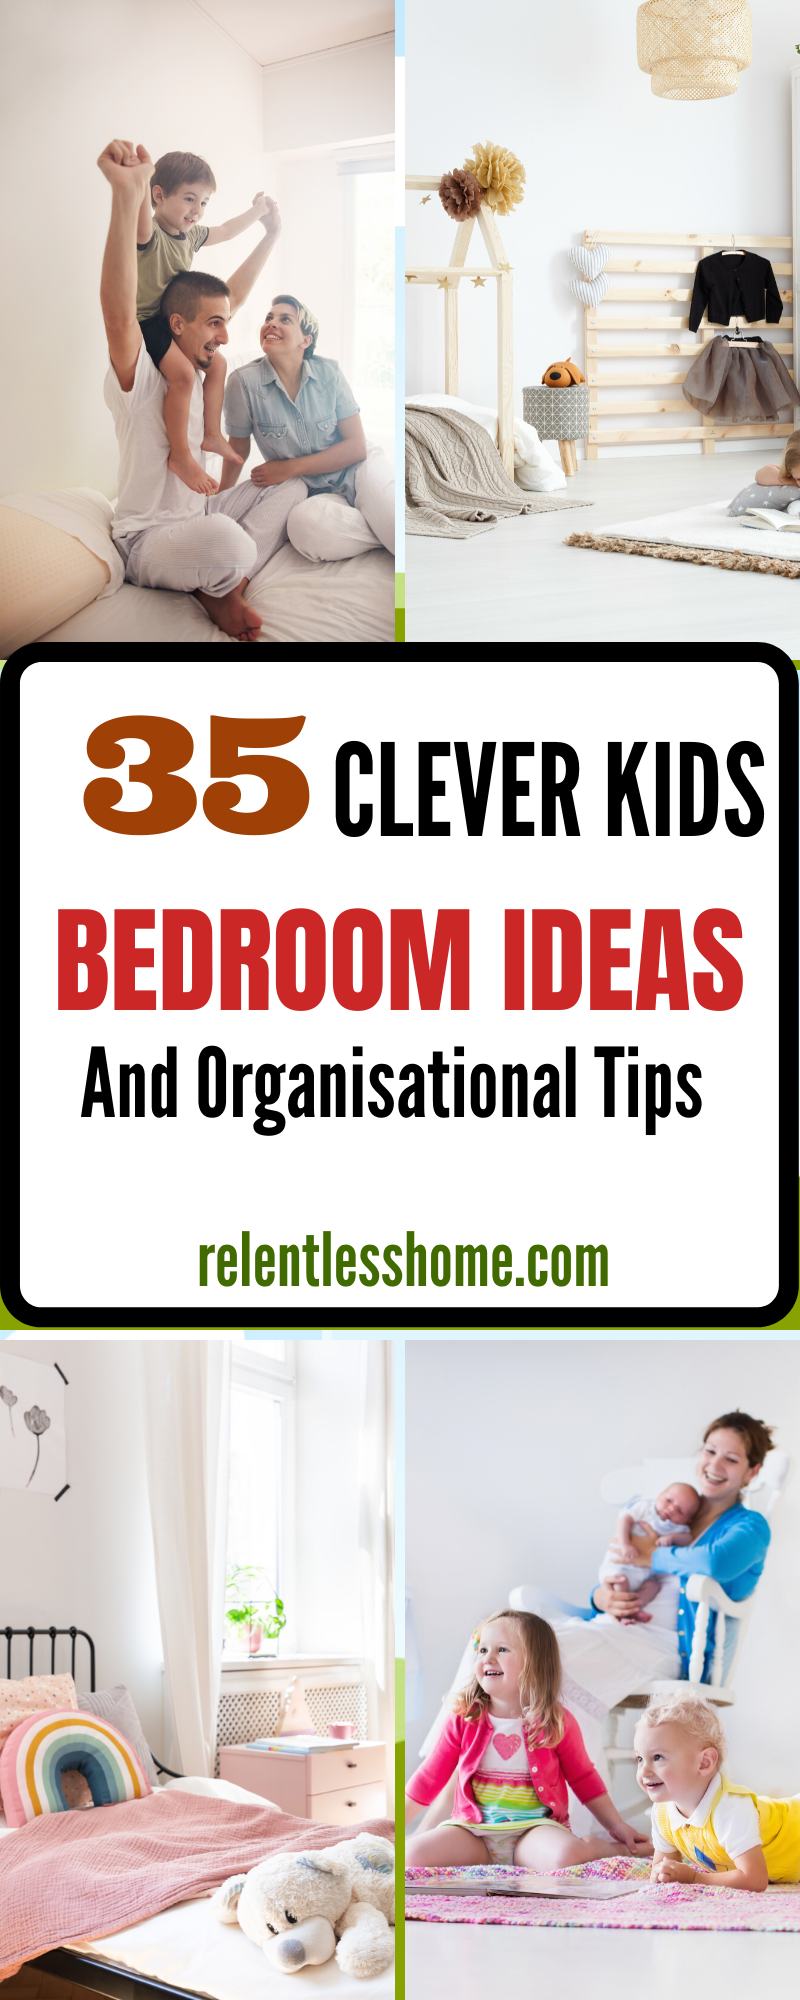 30 Clever Kids Bedroom Ideas And Organisational Tips